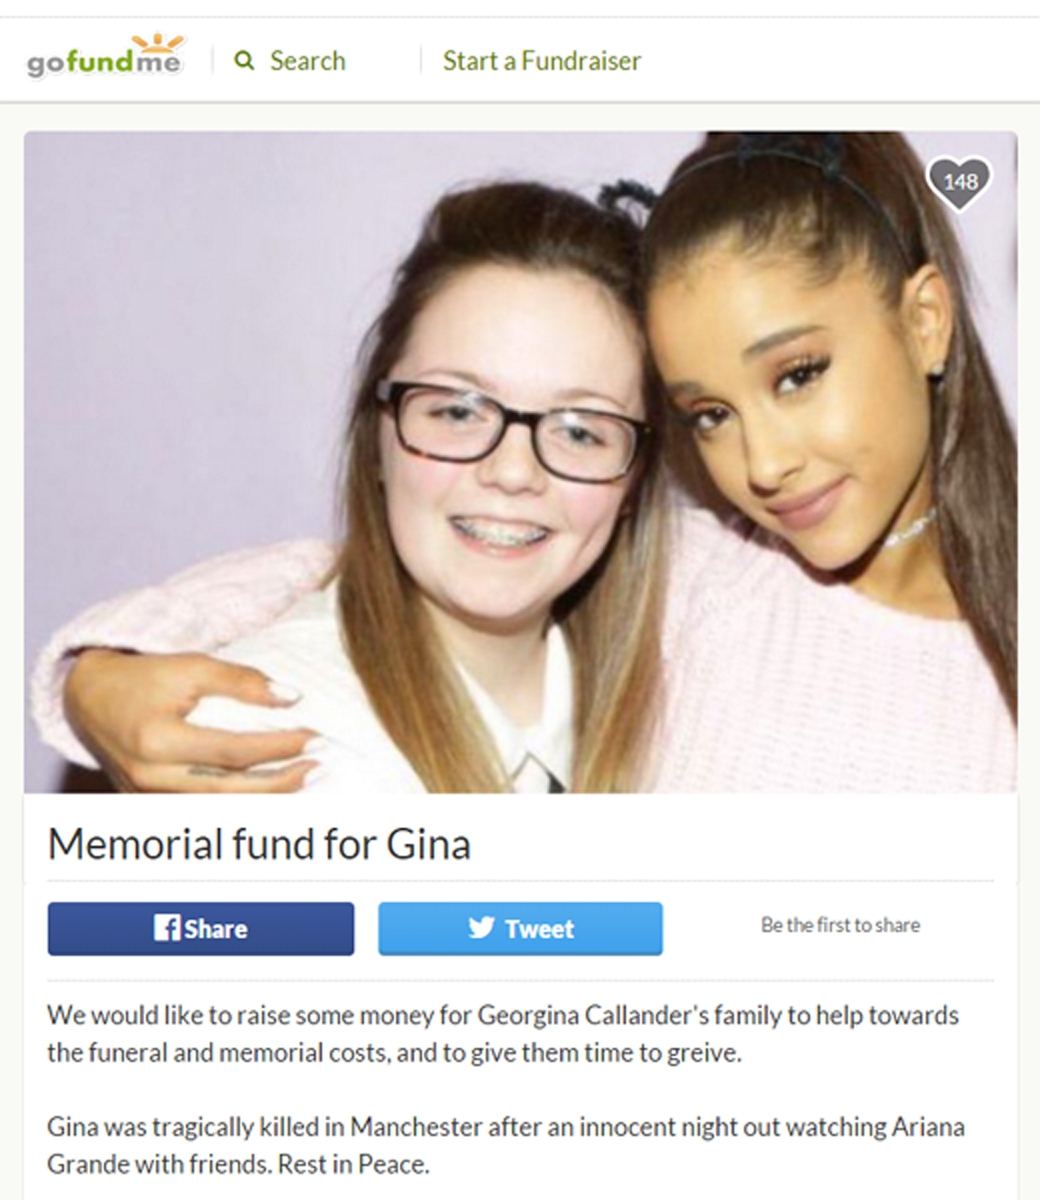 Gofundme page set up in memory of Georgina Callander (left) who has died after the explosion at the Manchester Arena where she had been attending a concert by Ariana Grande (right).